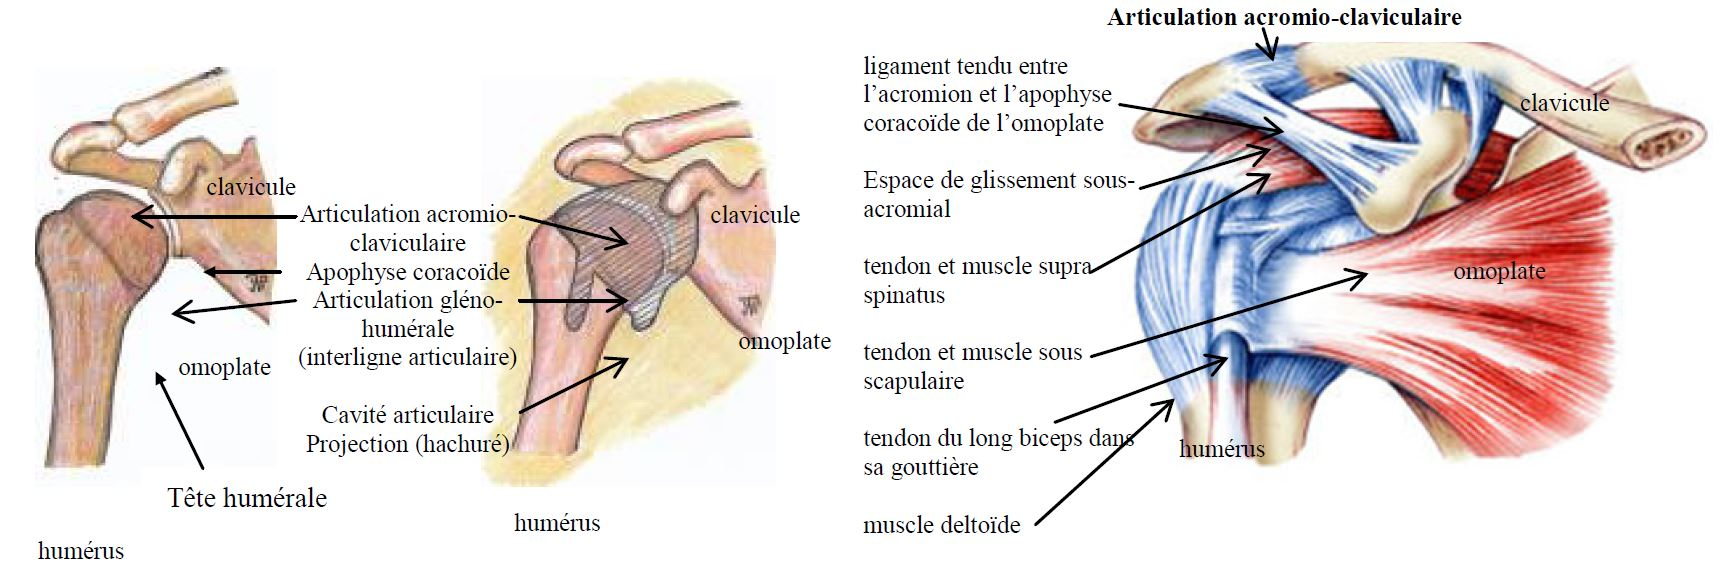 articulation acromioclaviculaire